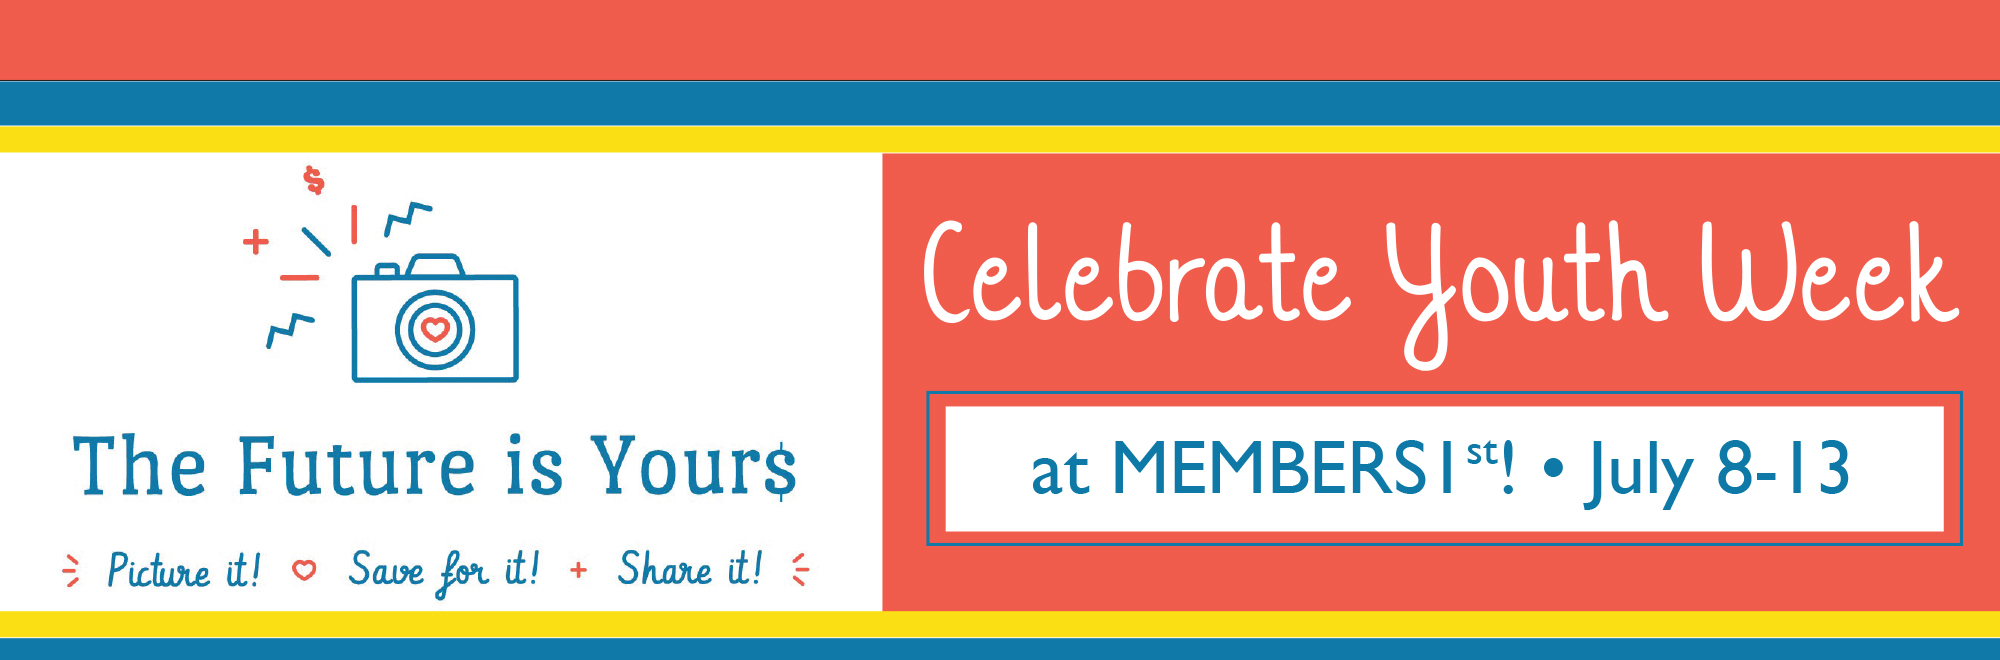 Celebrate Youth Week at MEMBERS1st - July 8-13